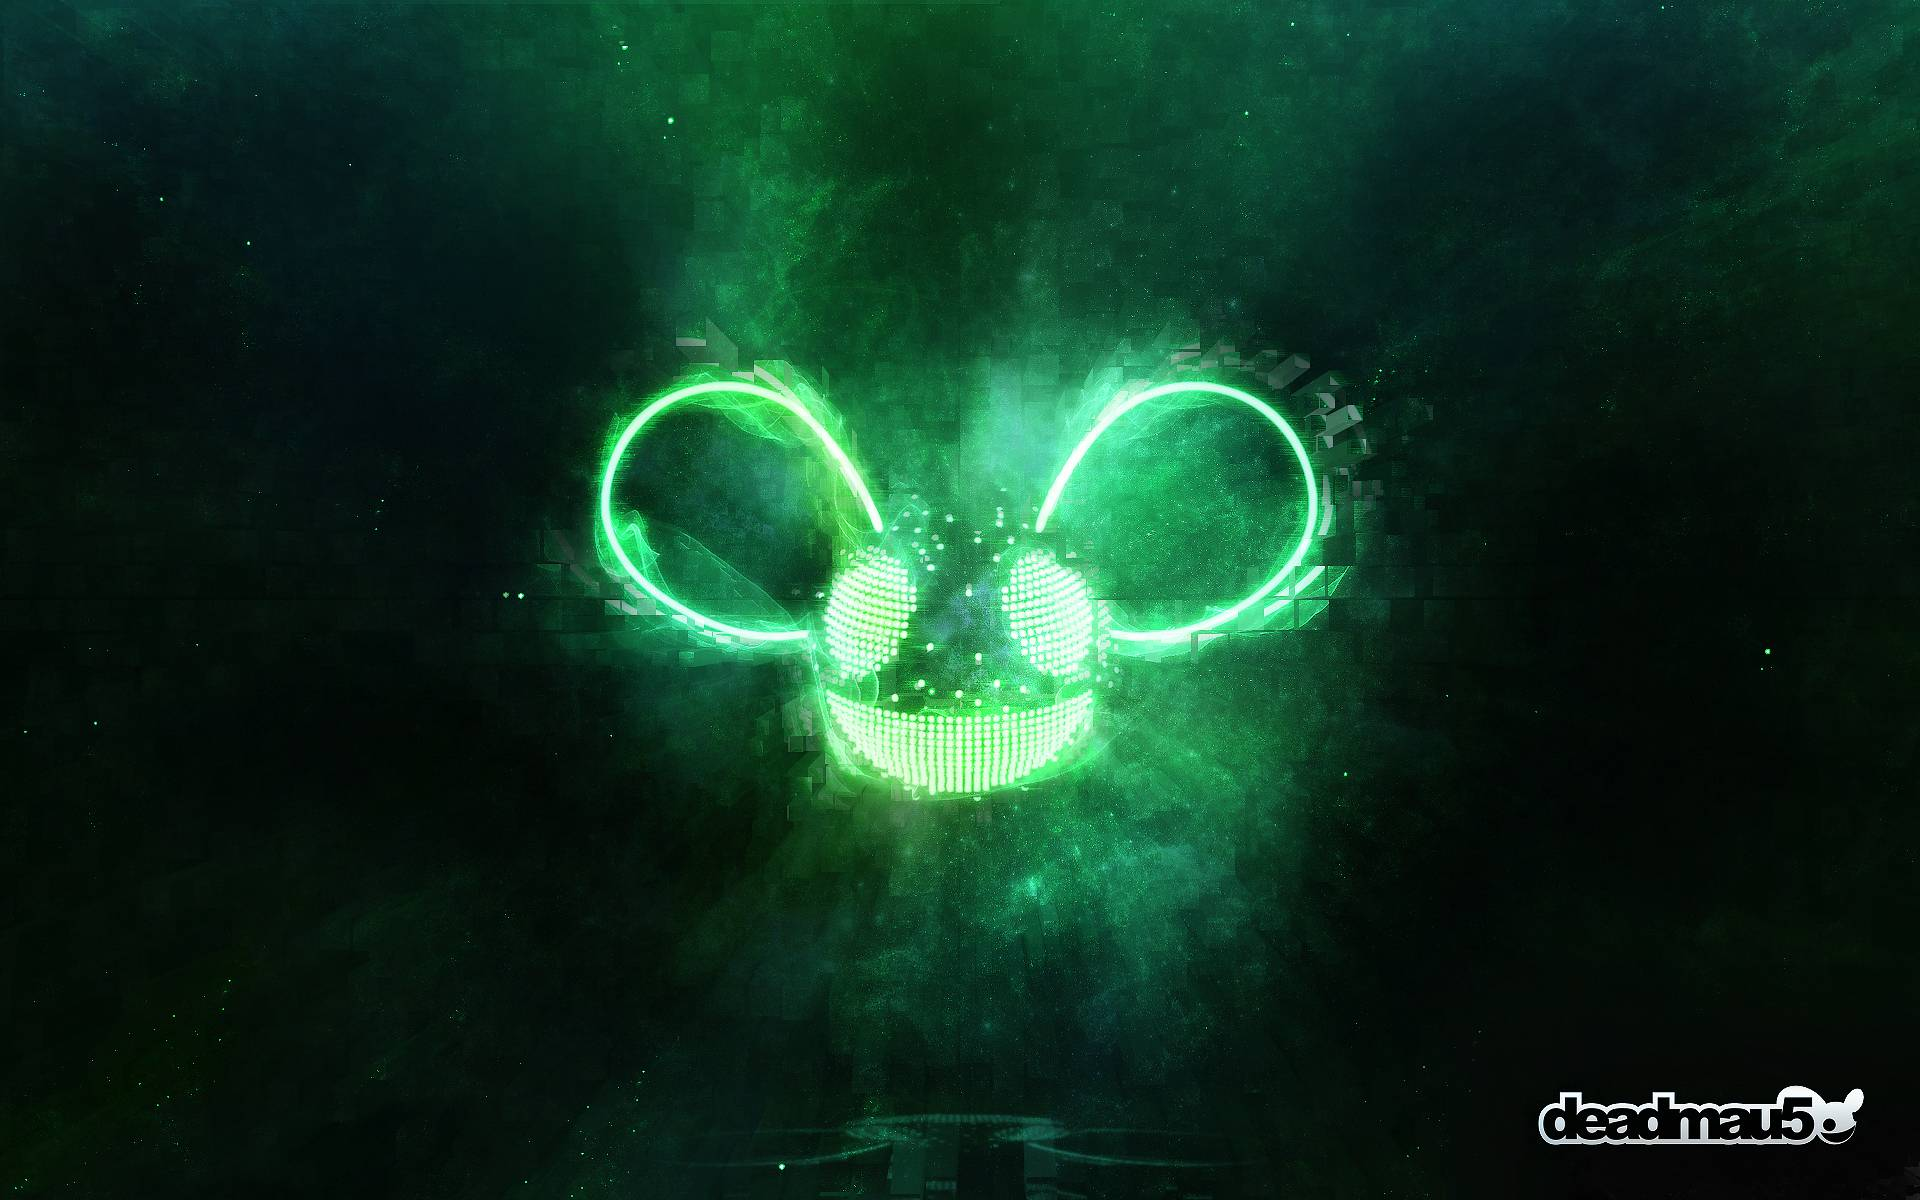 Deadmau5 Wallpapers - Wallpaper Cave